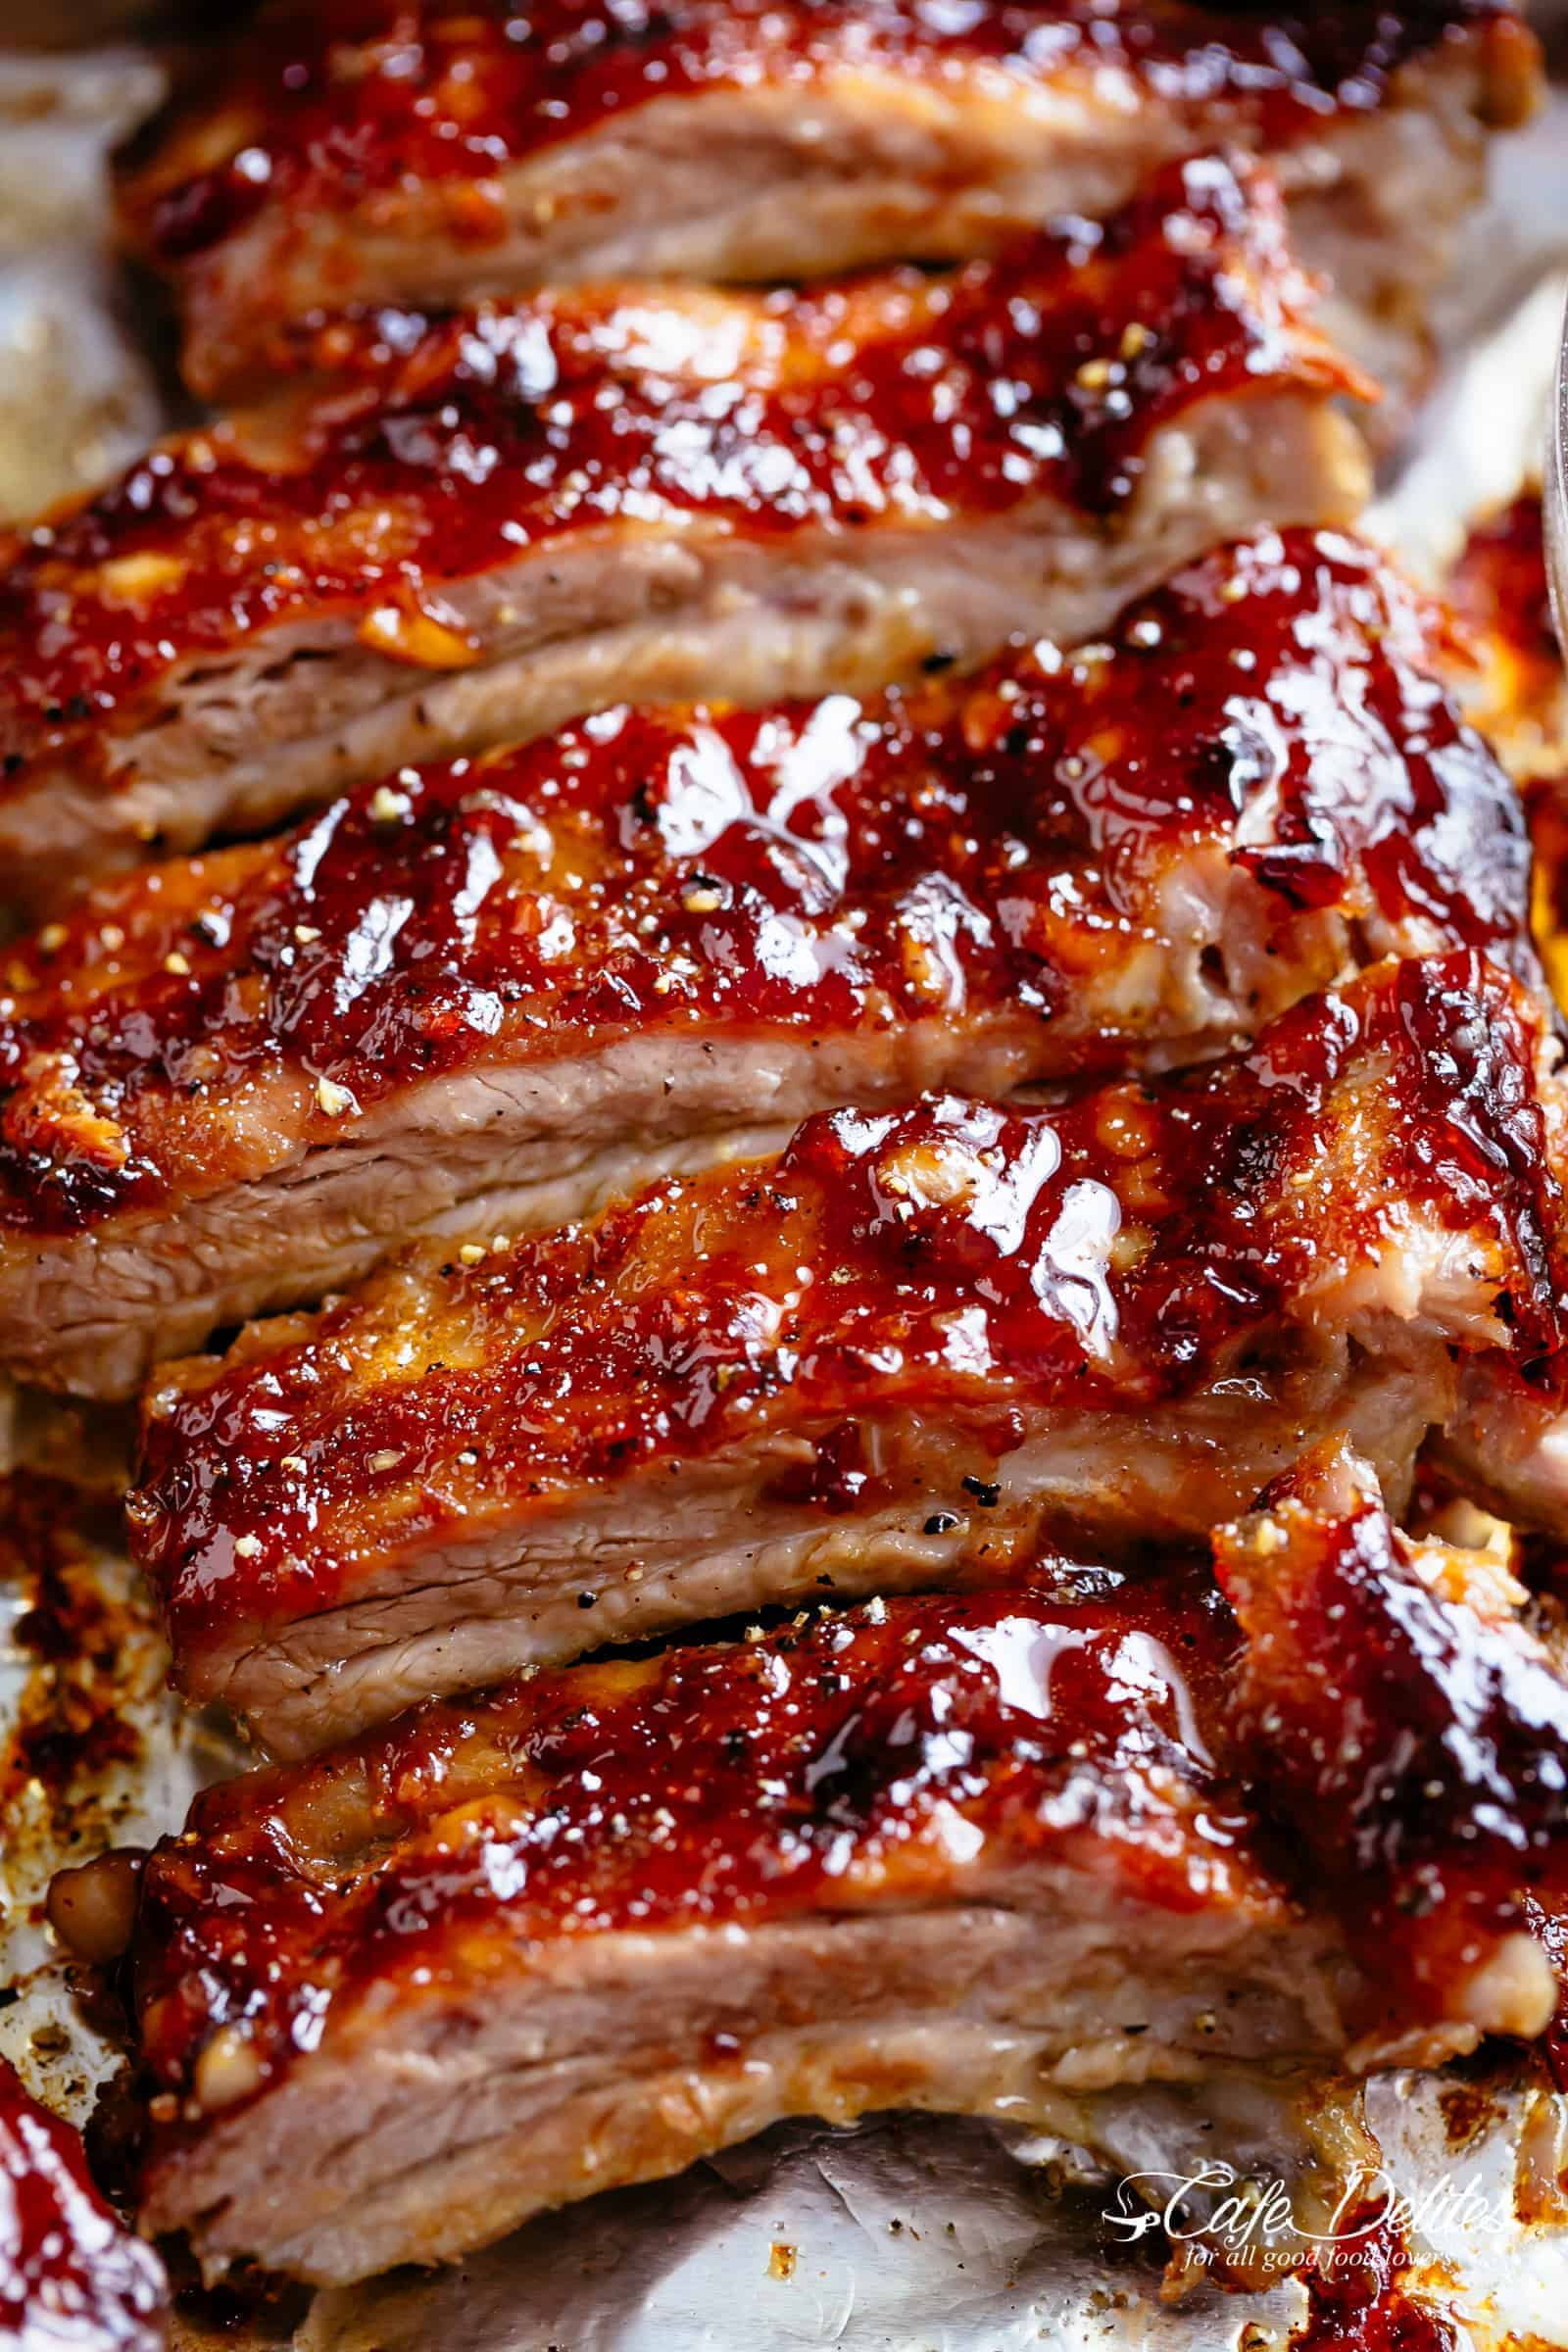 Deliciously sticky over bbq ribs